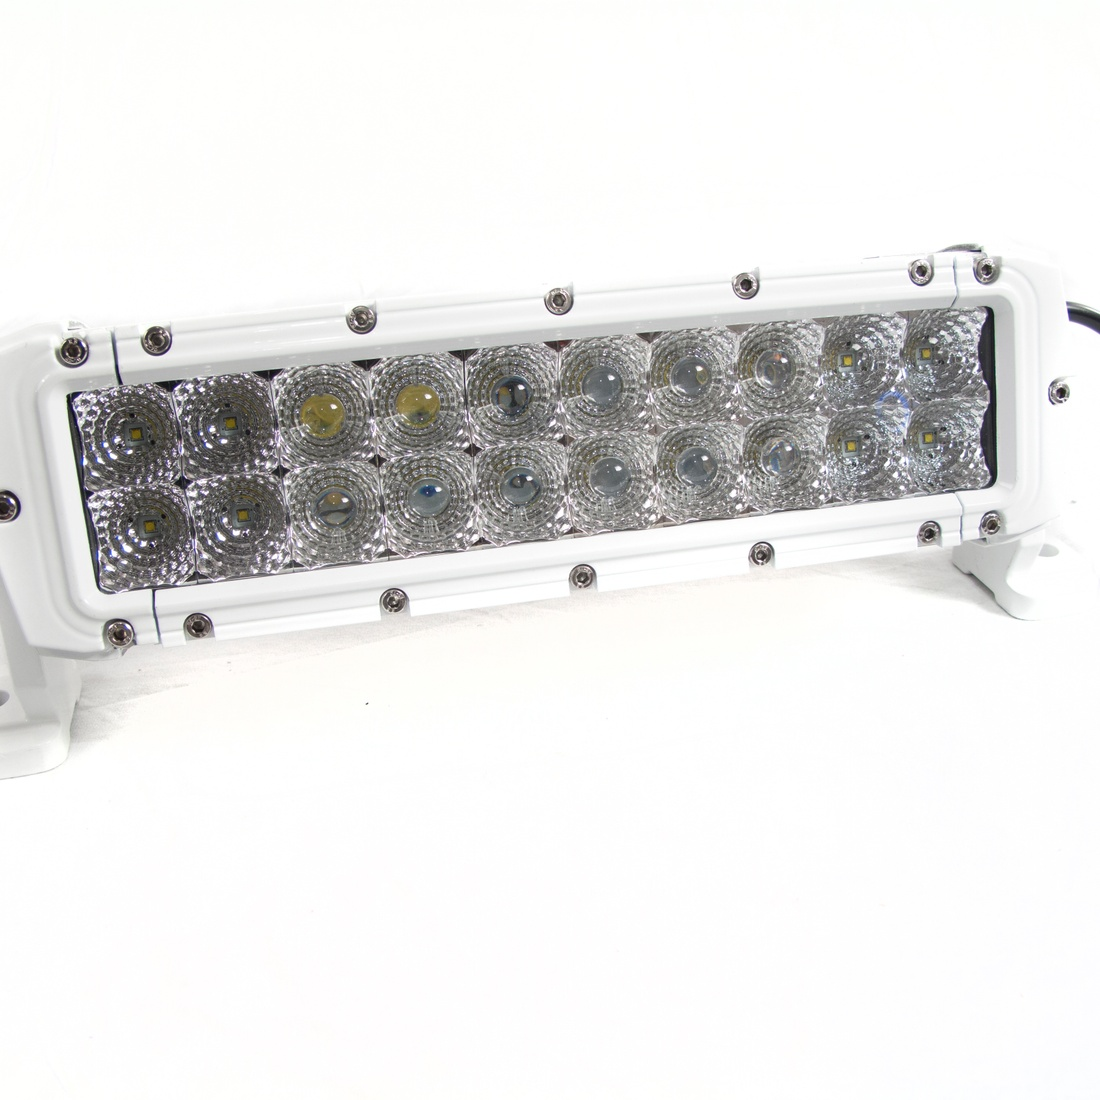 LED Lighting for UTV, ATV, Automobiles, Trucks, & Motorcycles